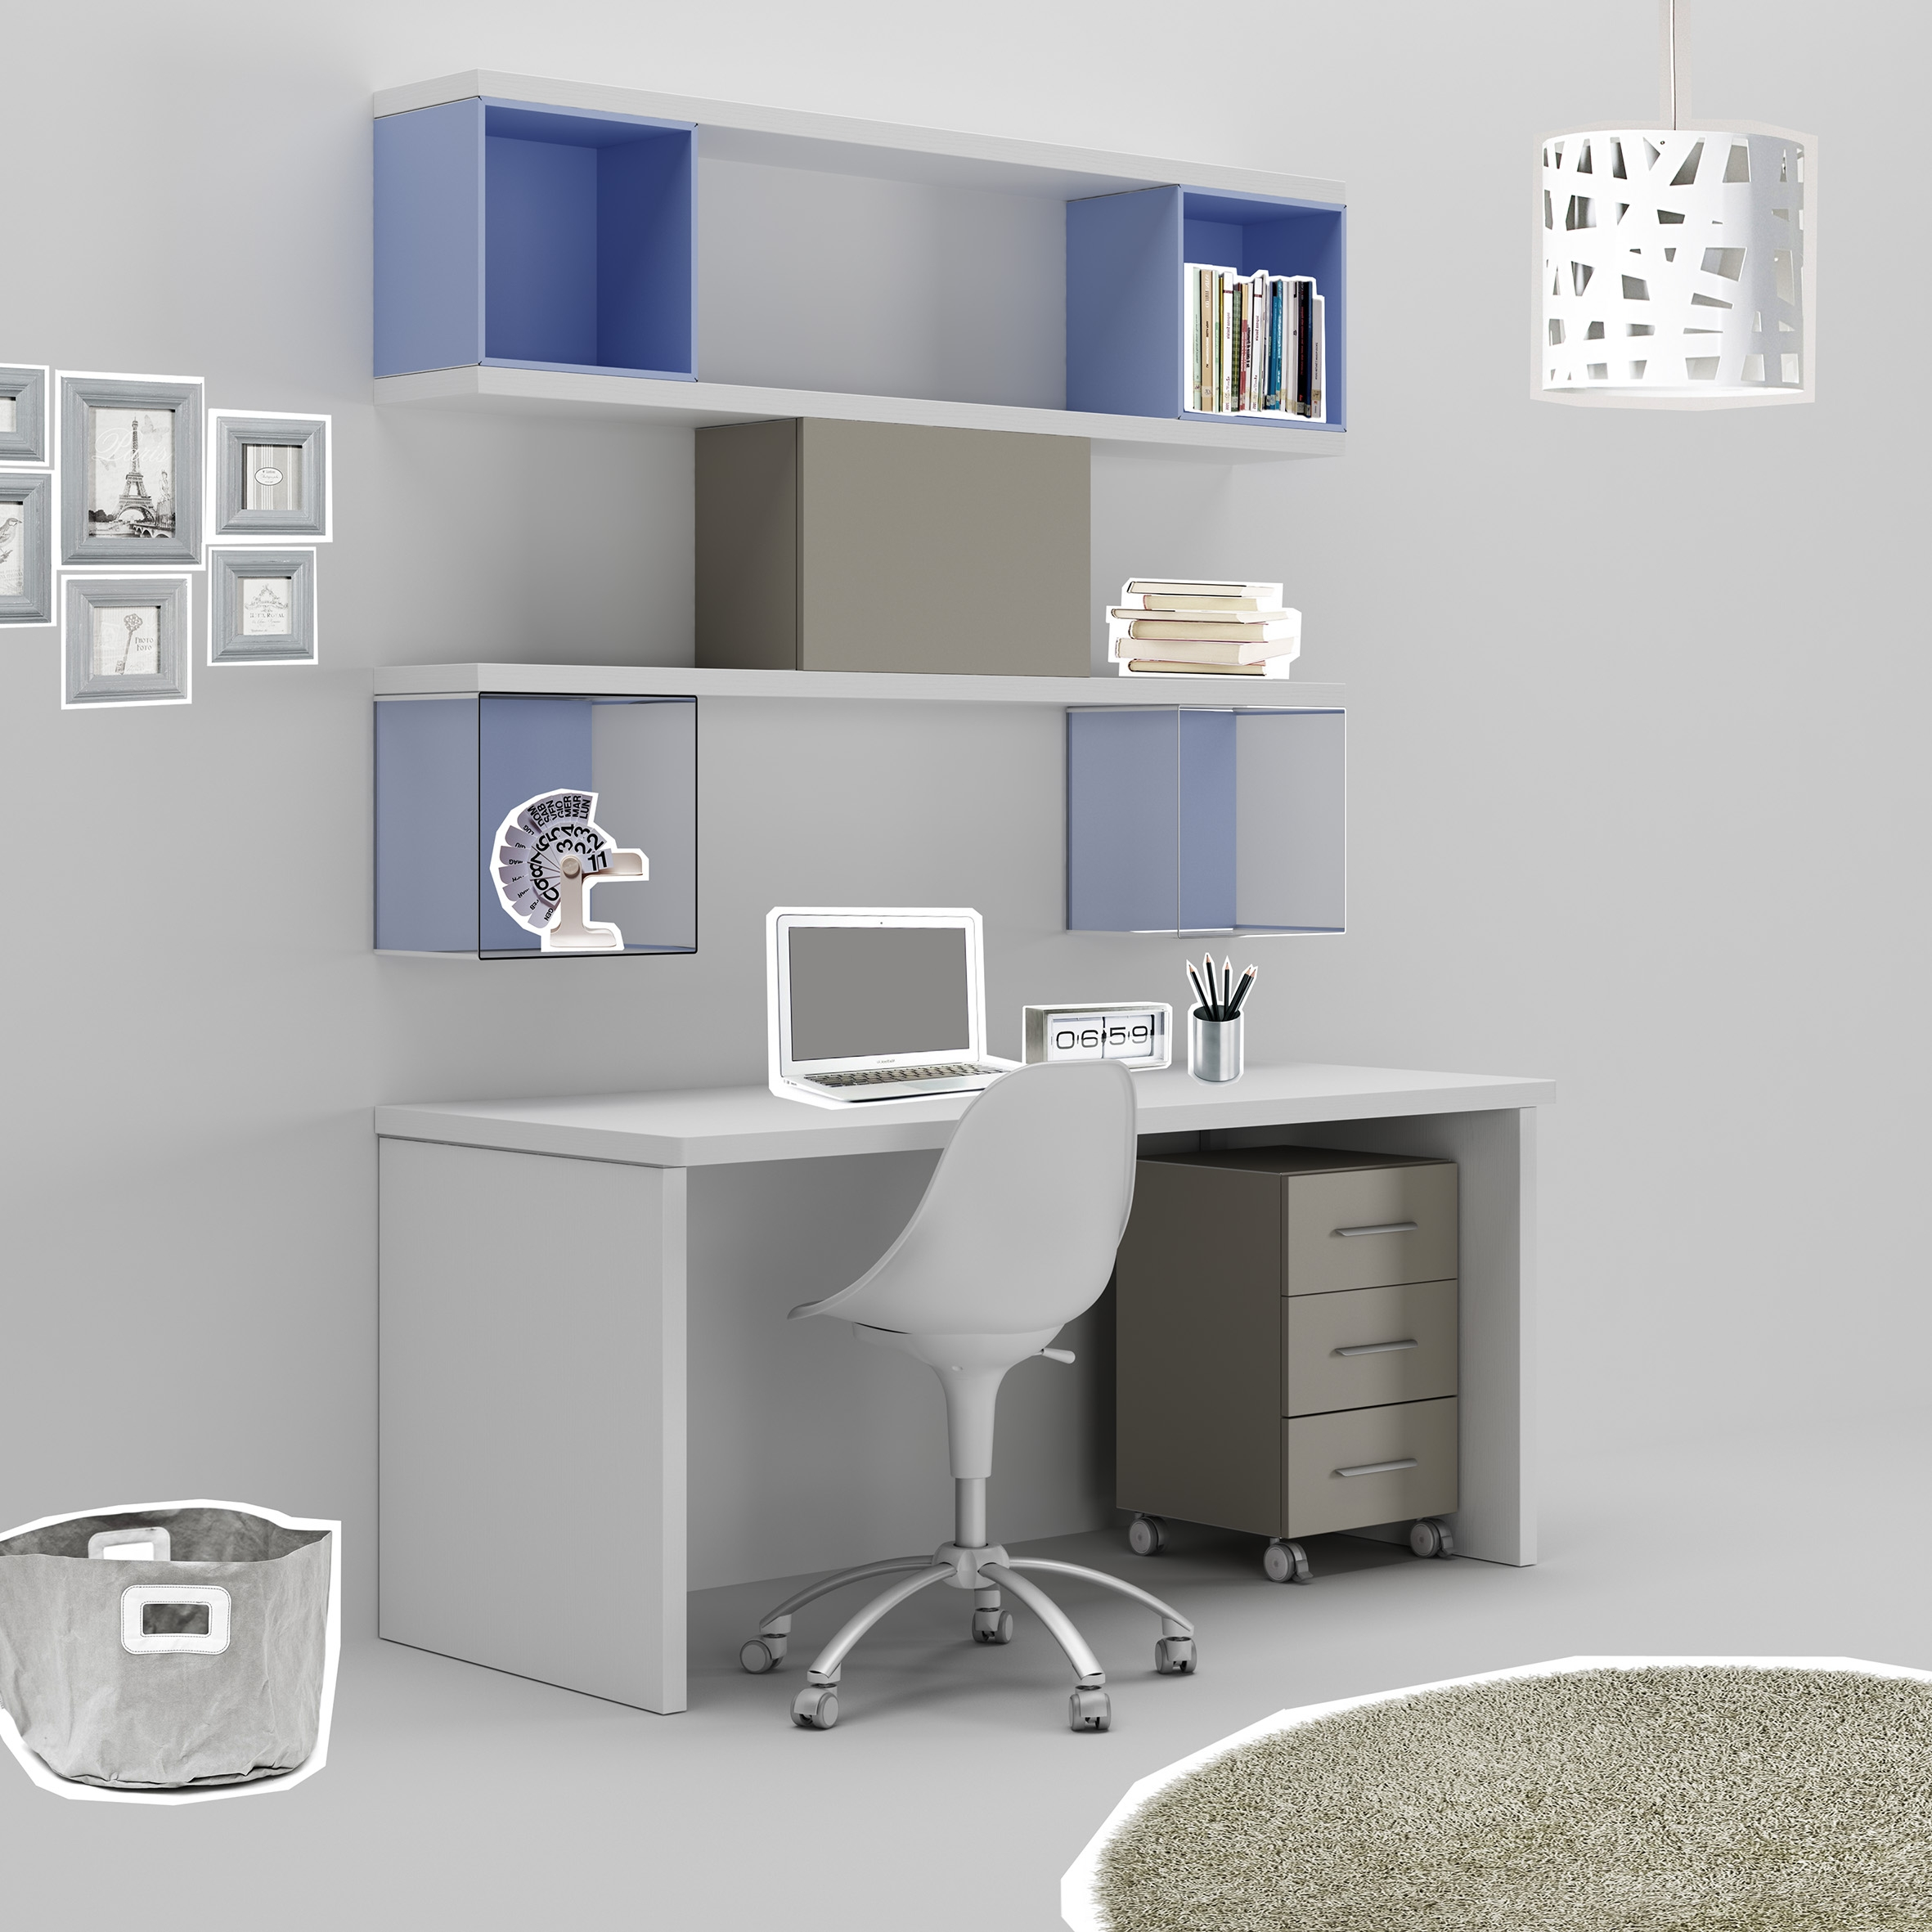 Bureau ado avec niches d co en m thacrylate moretti compact so nuit - Bureau des cartes grises ...